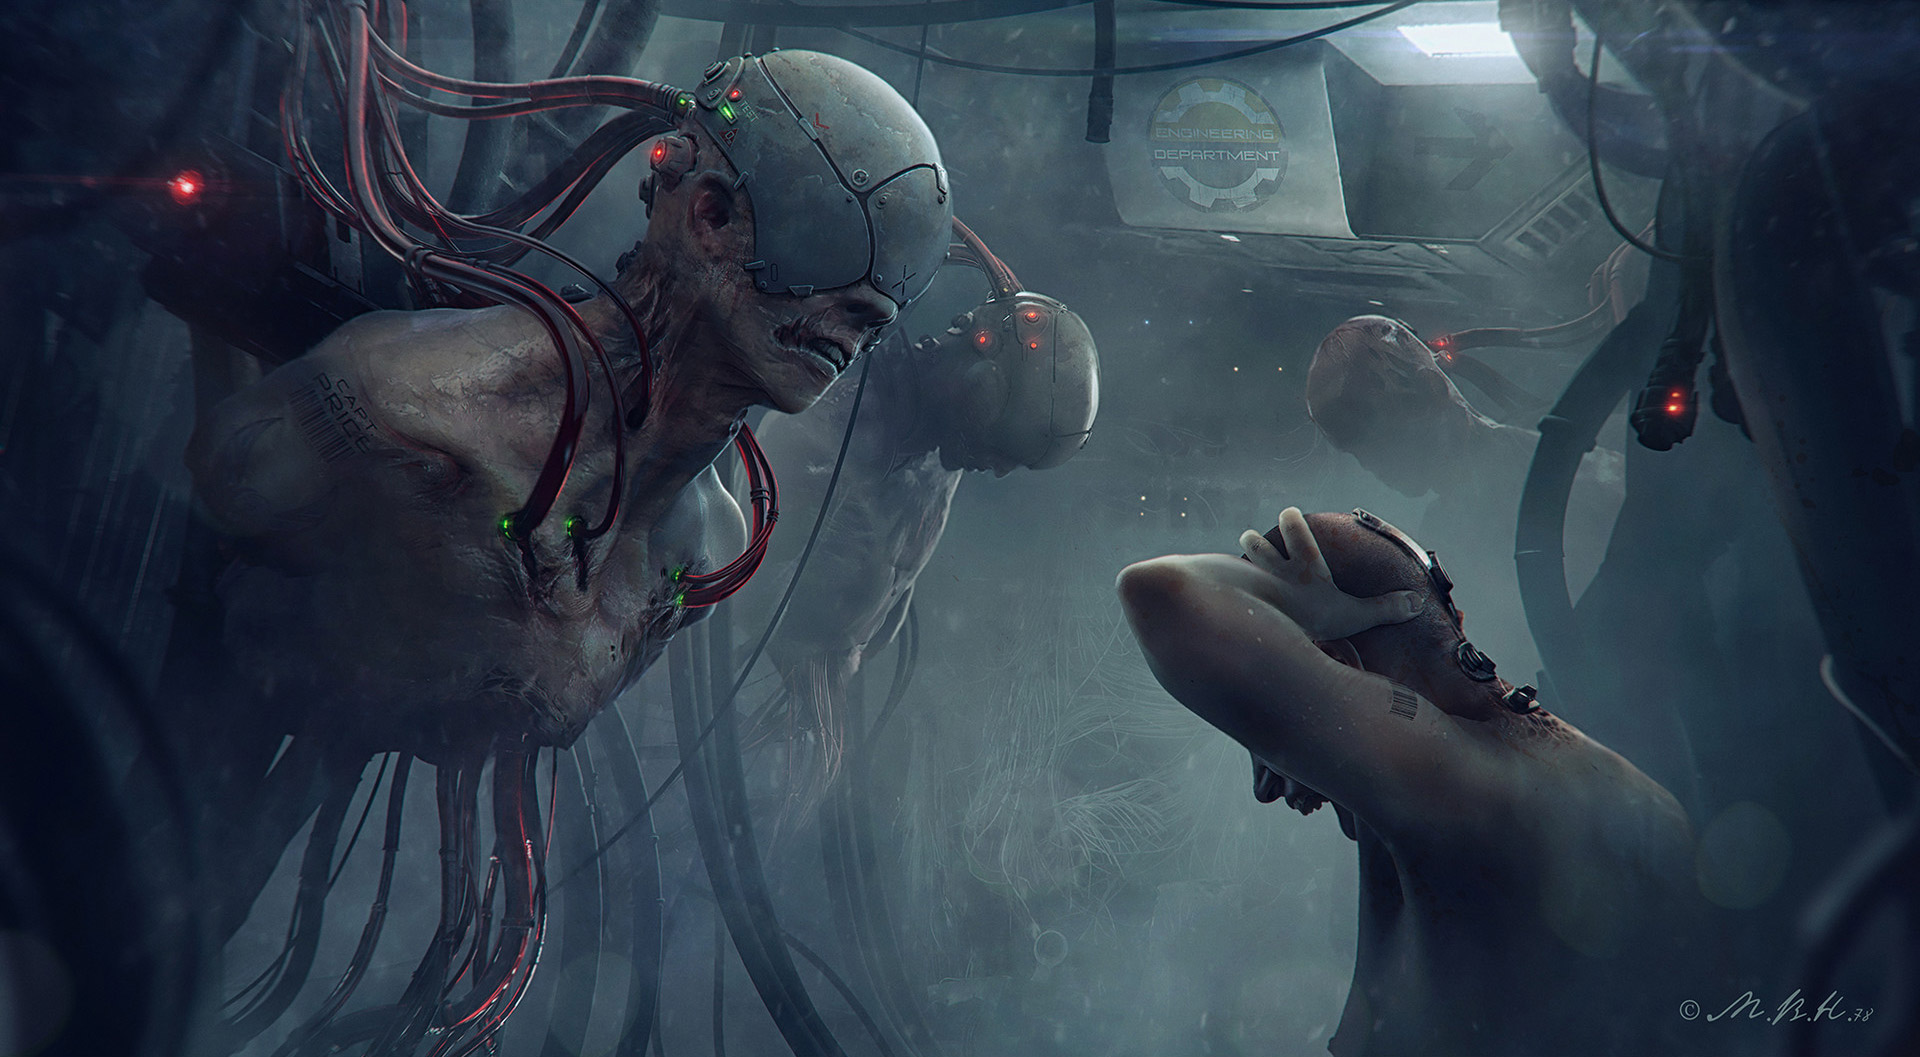 The Stunning Science Fiction Art of Vladimir Manyukhin